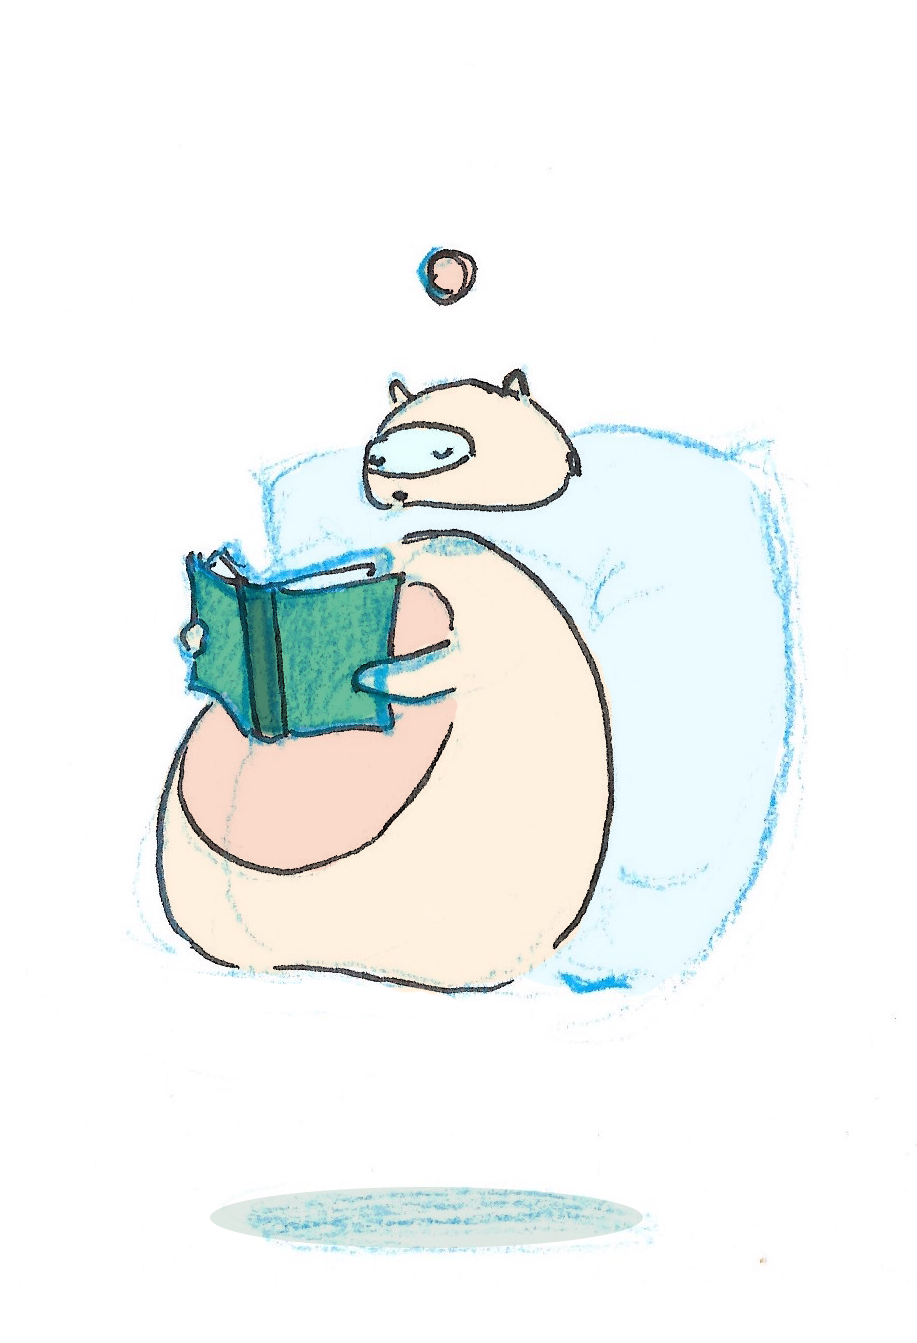 Babaoo_reading copy.png